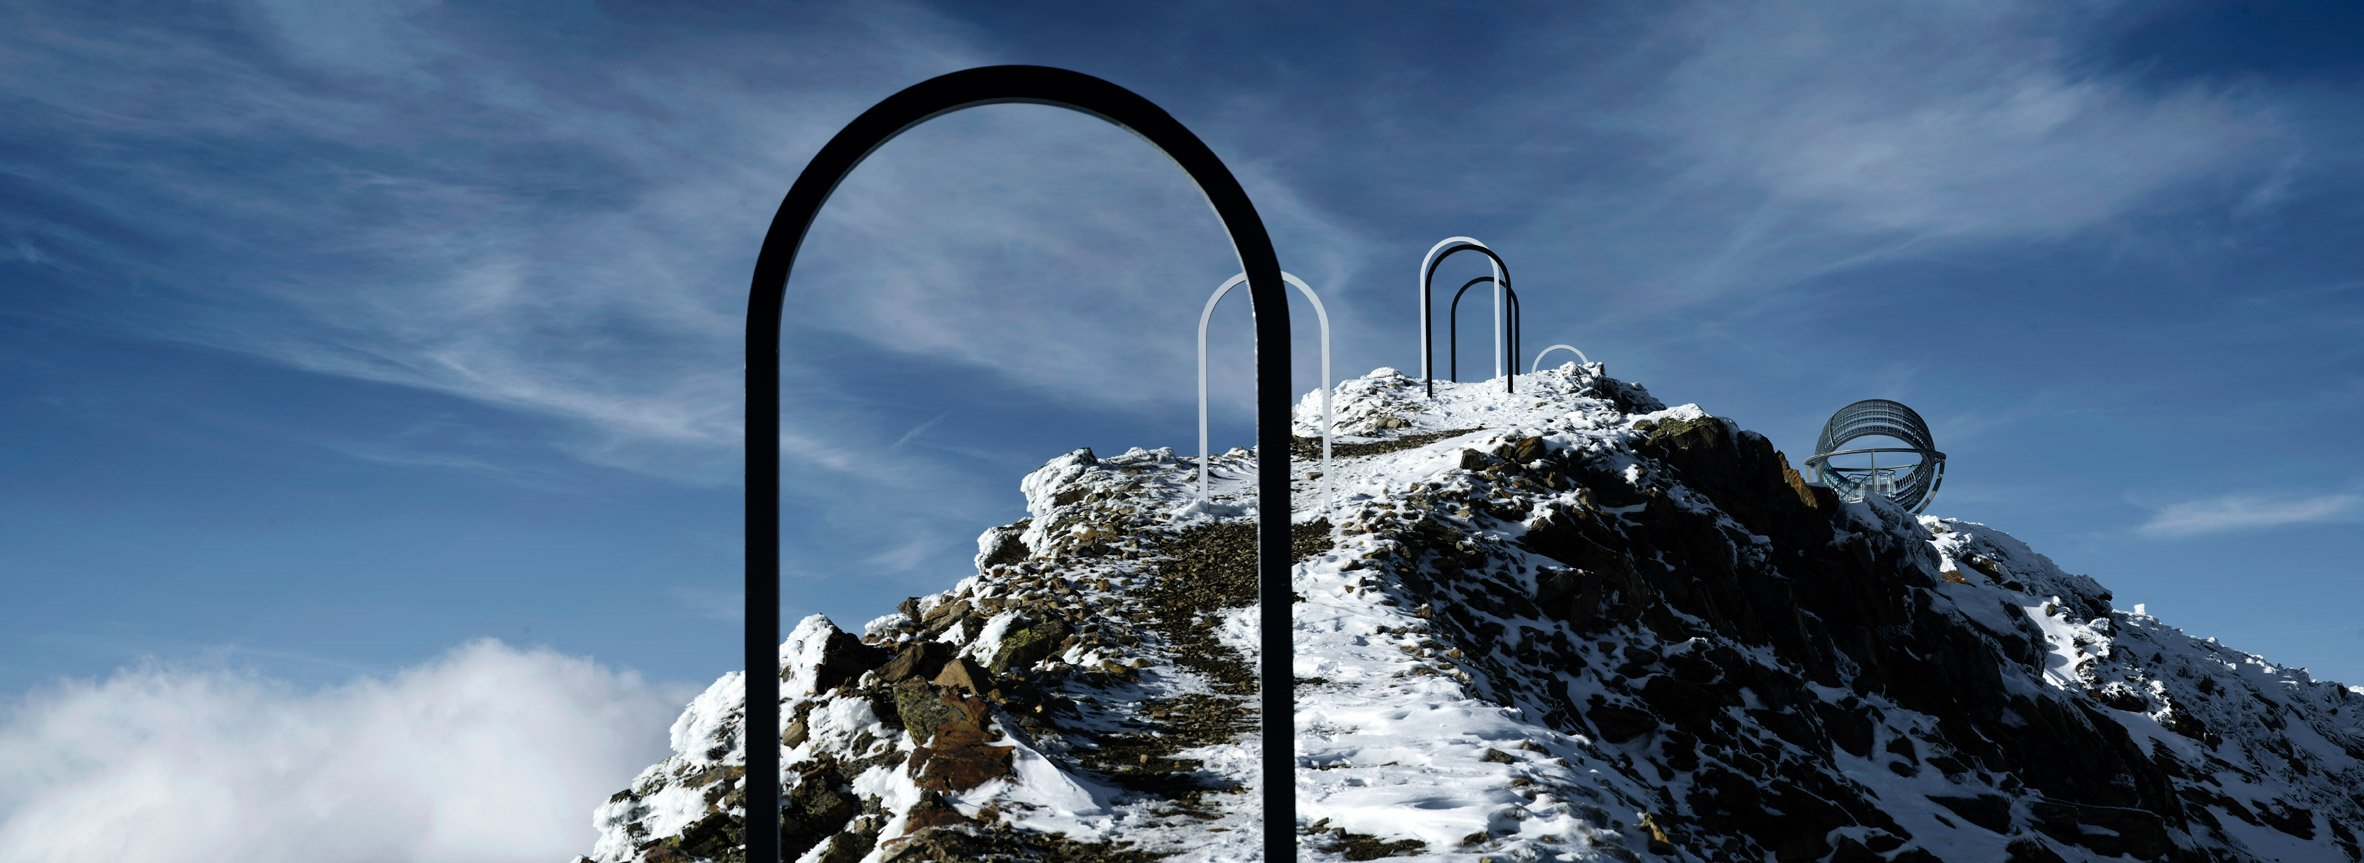 Olafur Eliasson's Out Glacial Perspectives installation on Hochjochferner glacier